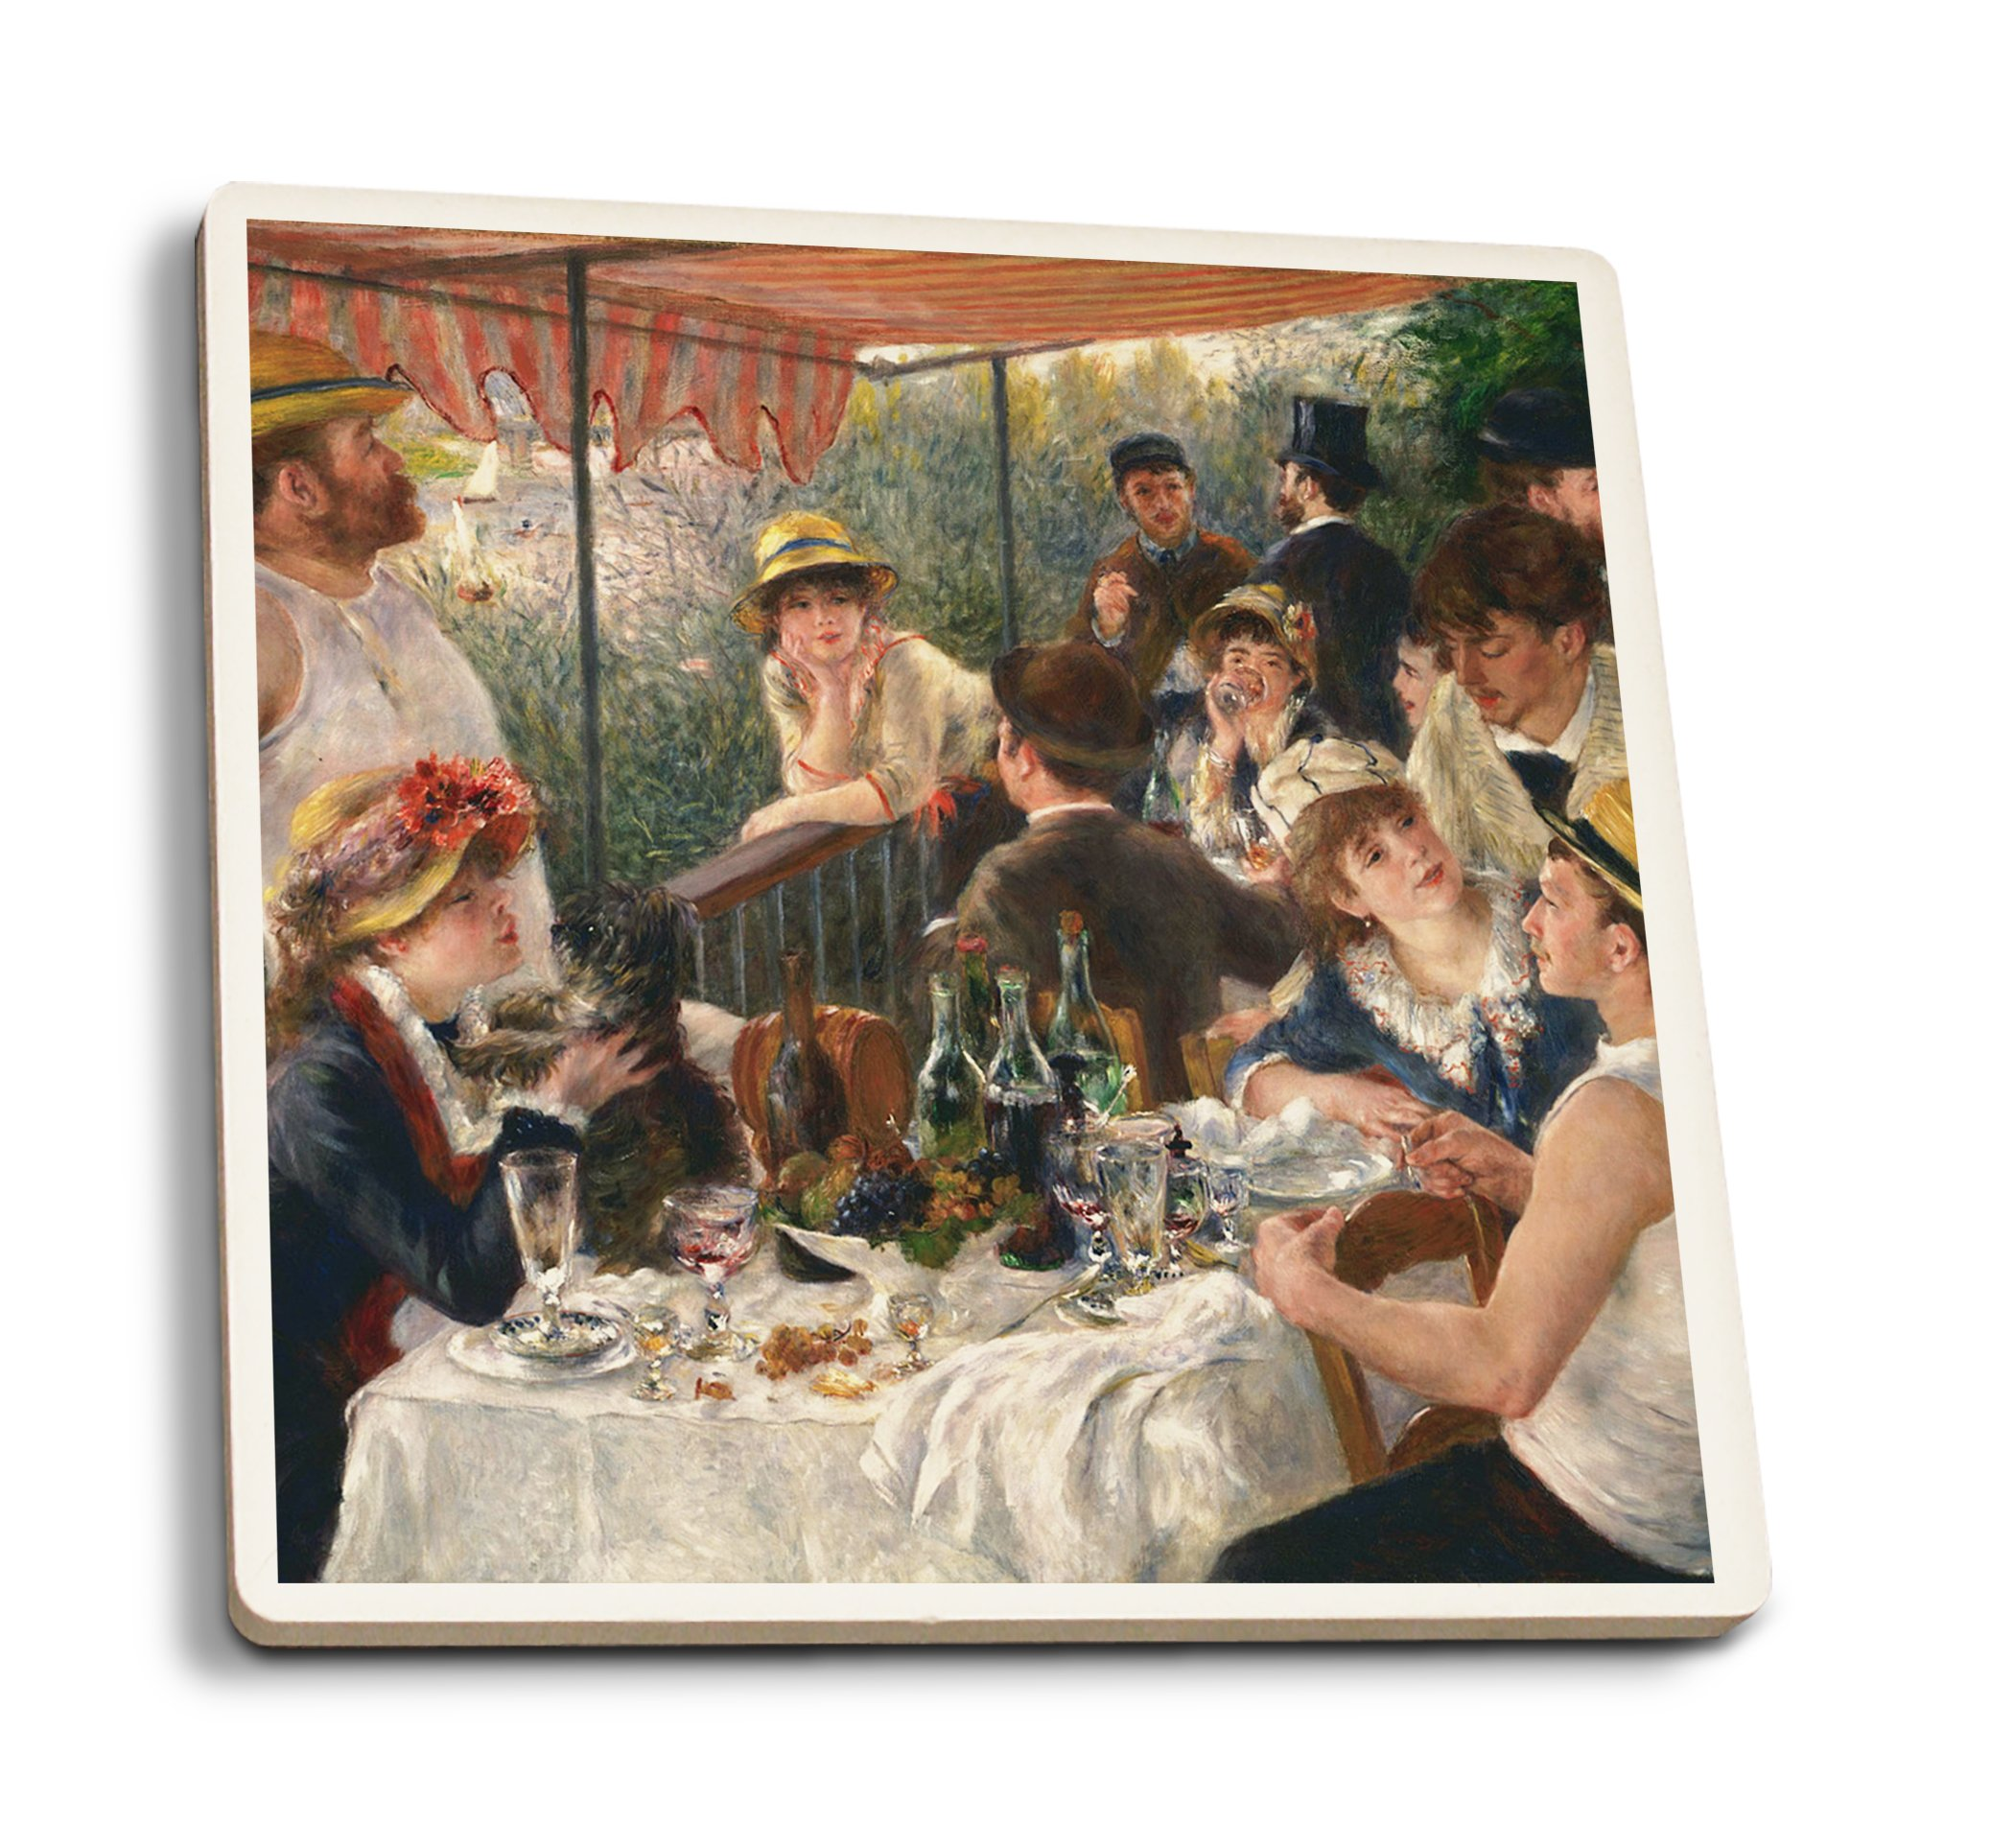 Luncheon of The Boating Party - Masterpiece Classic - Artist: Pierre-Auguste Renoir c. 1880 (Set of 4 Ceramic Coasters - Cork-Backed, Absorbent)